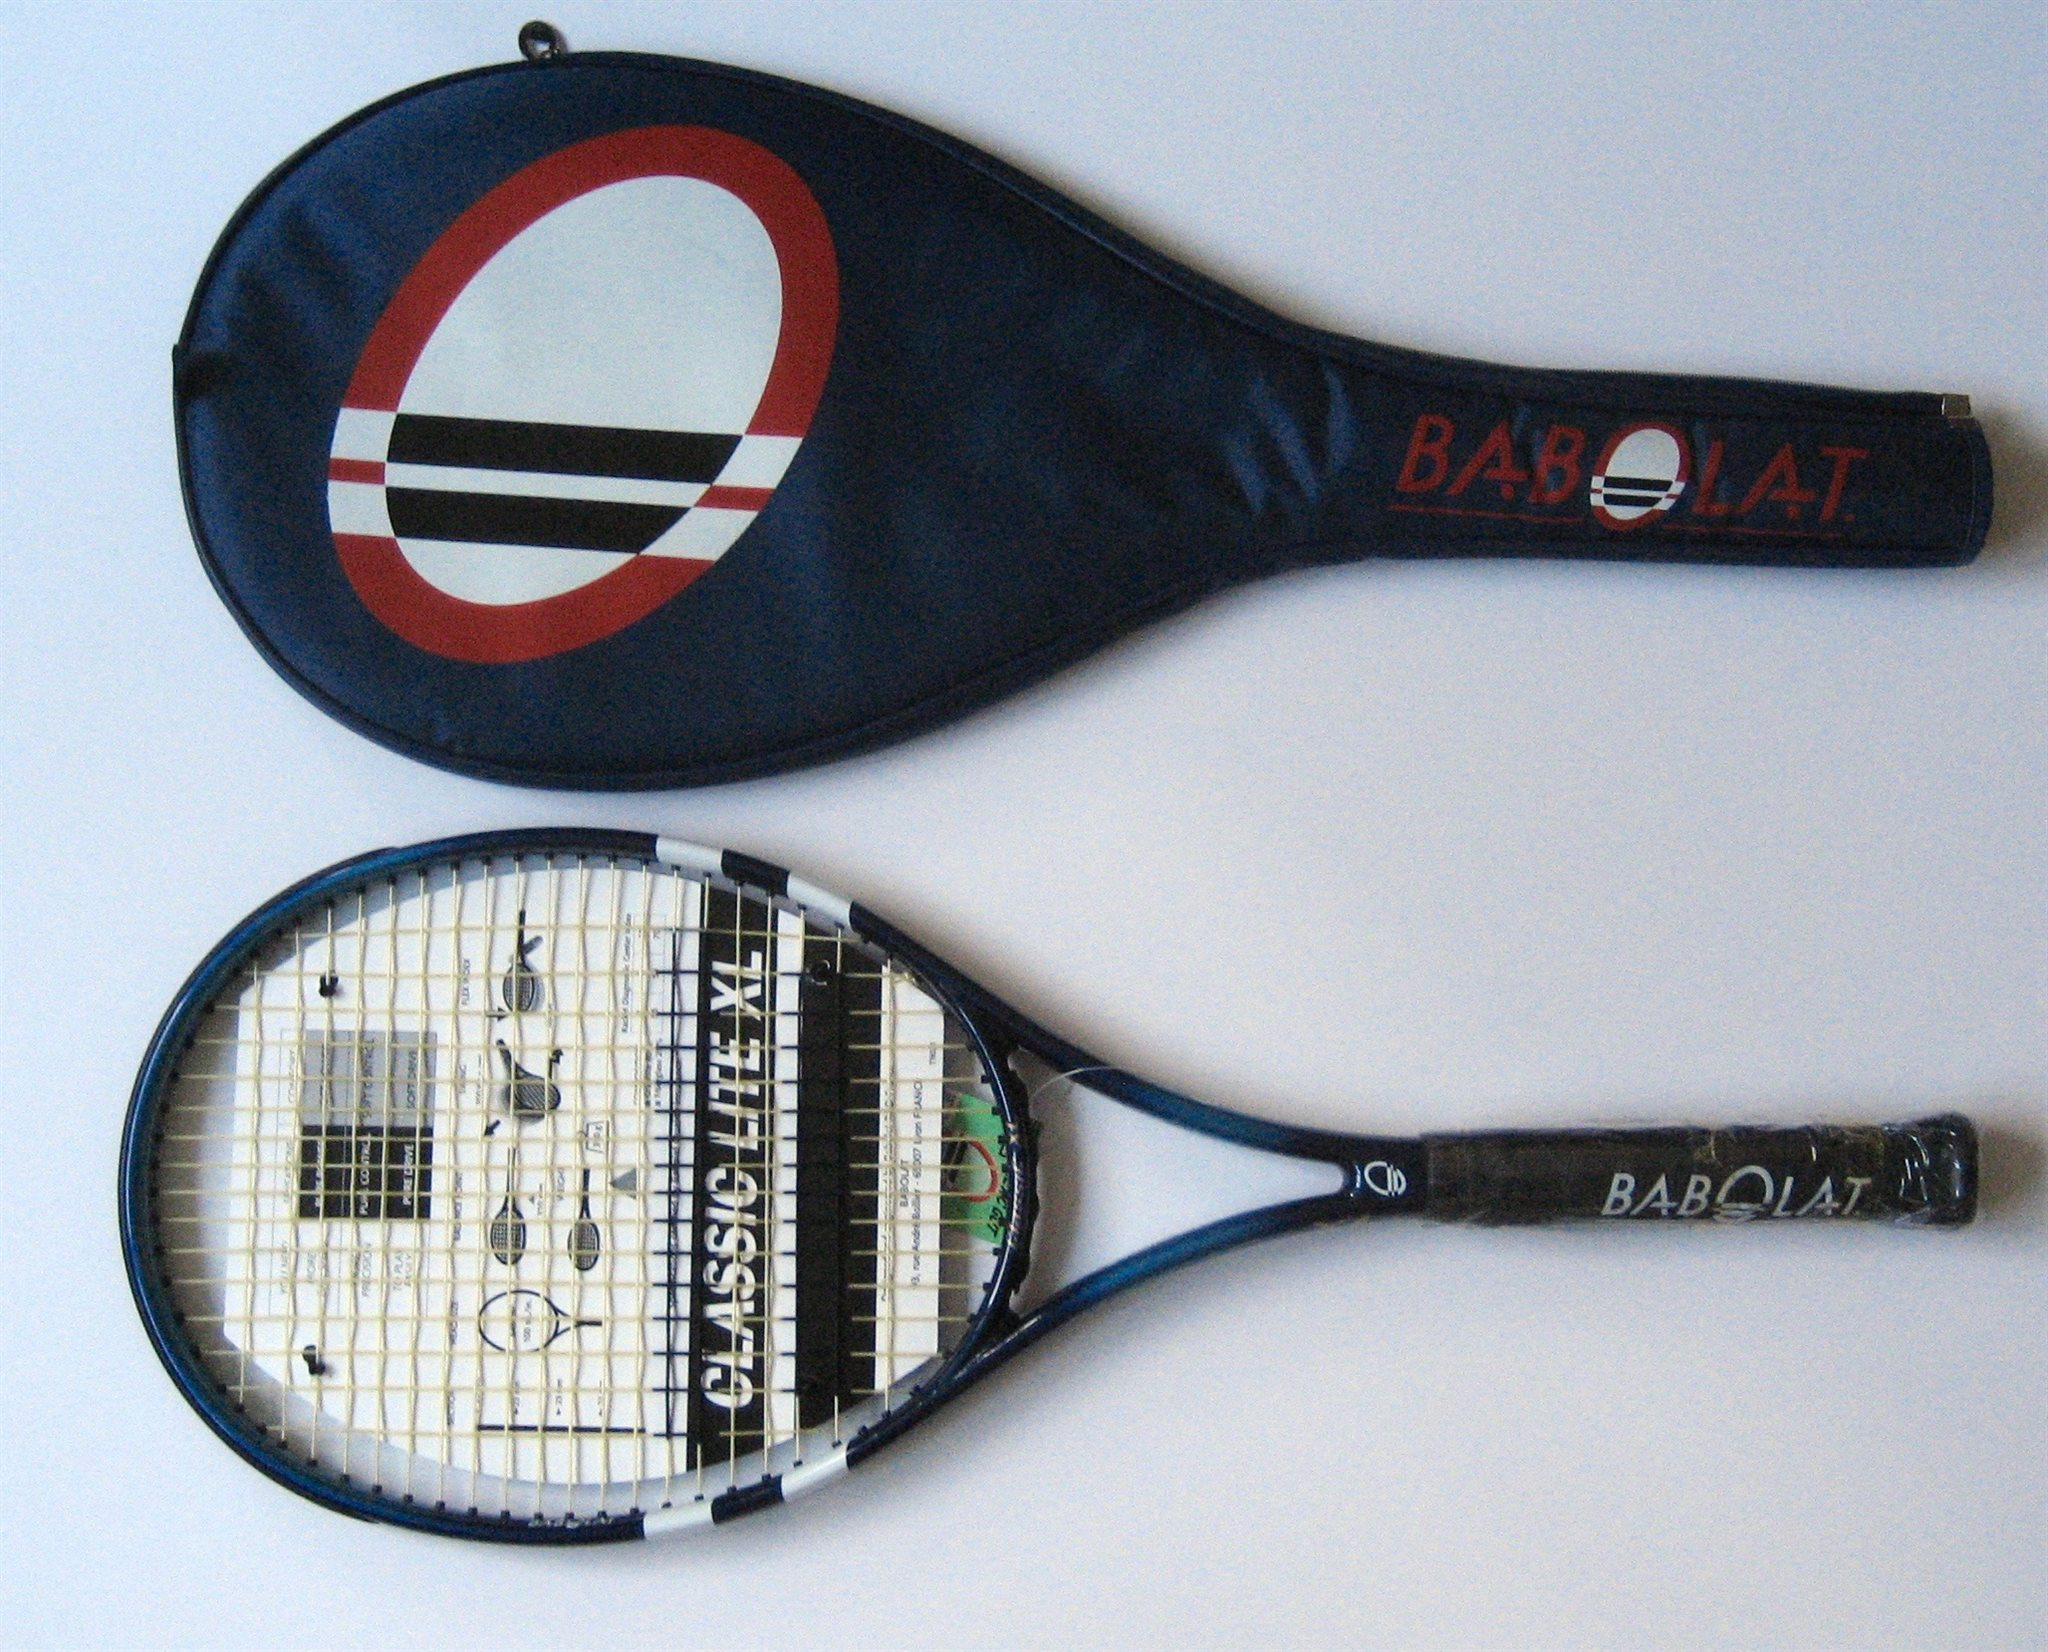 e47a5b0260 Vintage tennis racquet collection - old but gold in the Tennisnerd ...